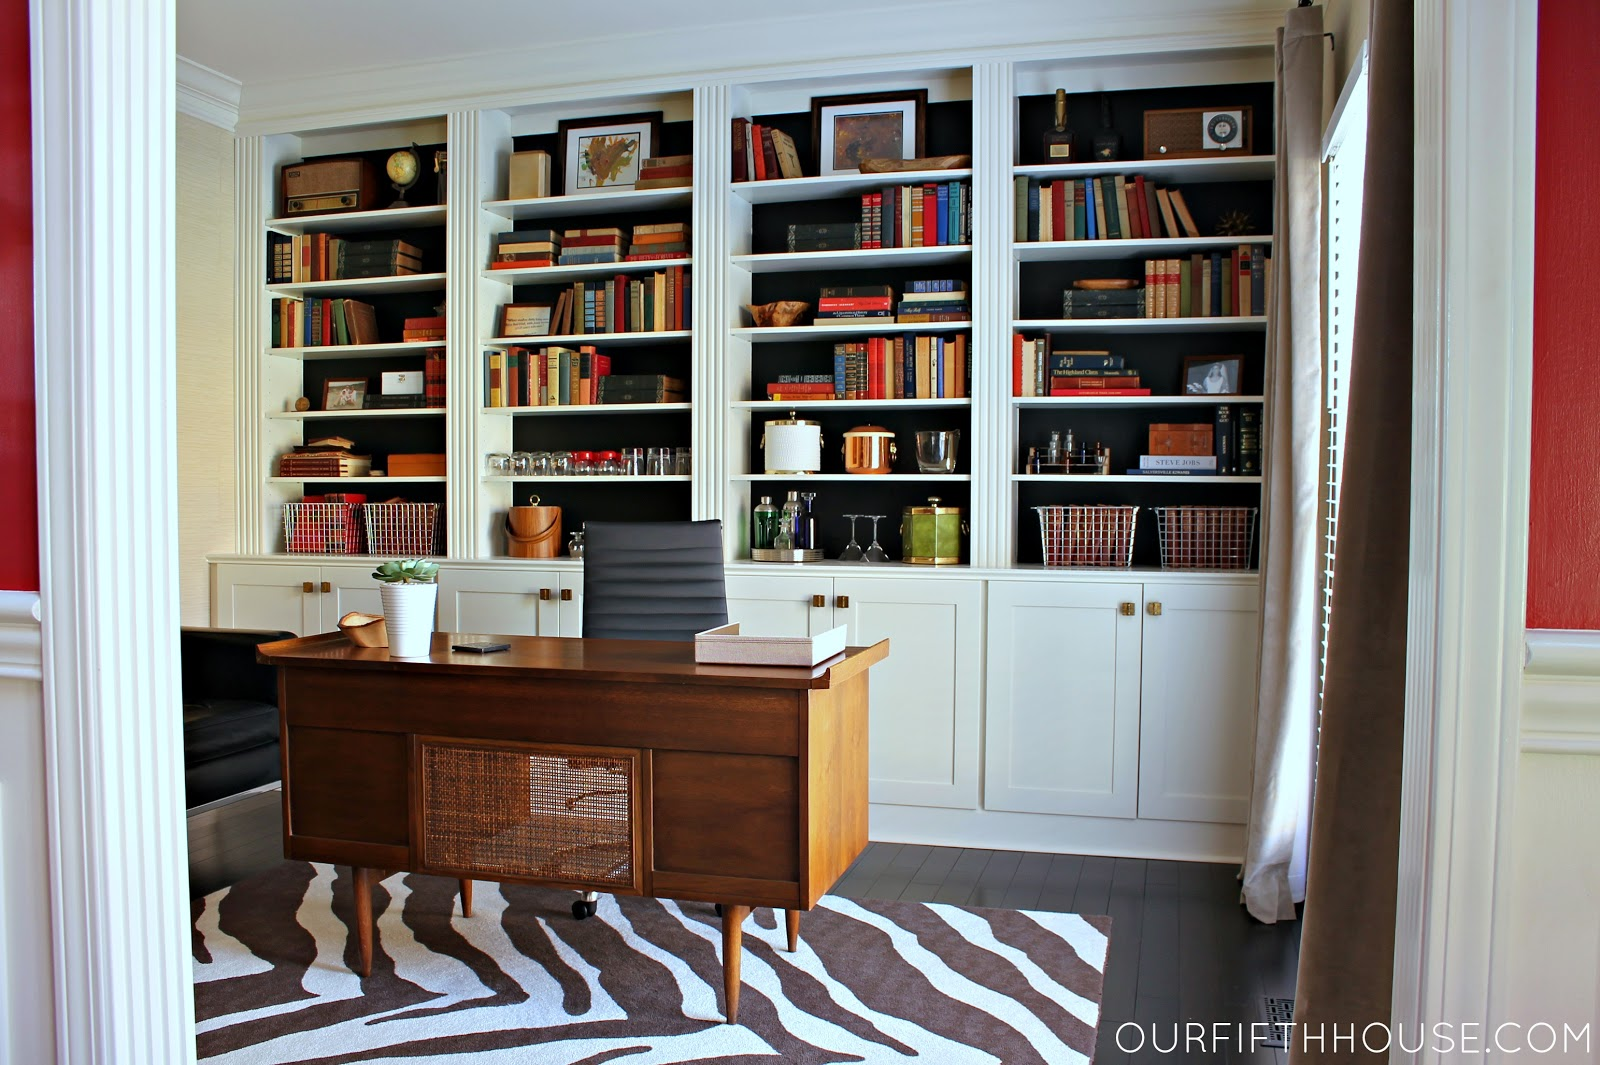 home office with new built-in bookcases - our fifth house